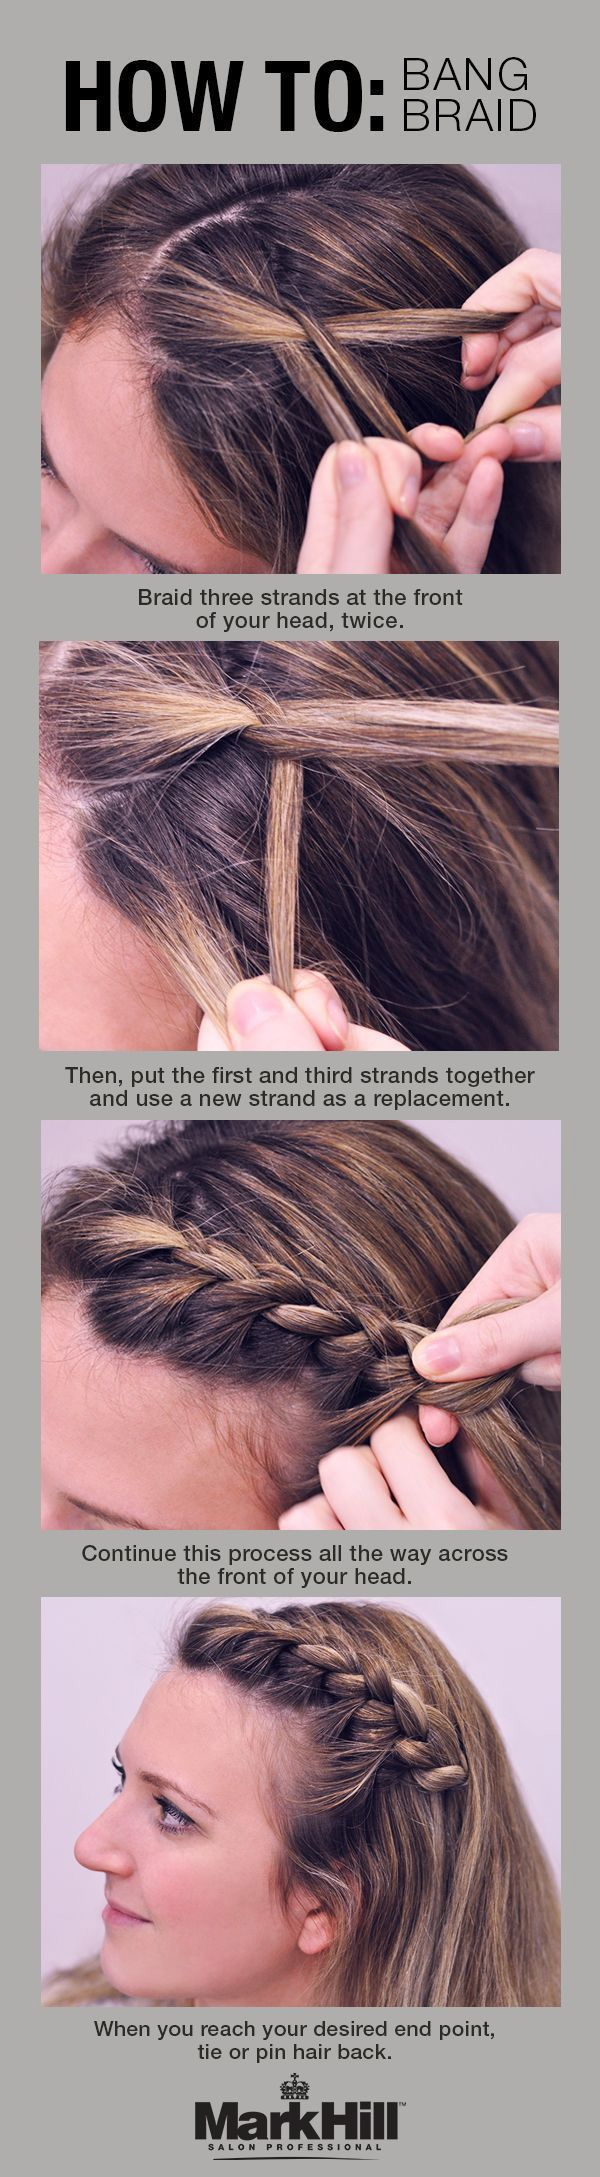 easy hairstyles for bangs to get them out of your face hair